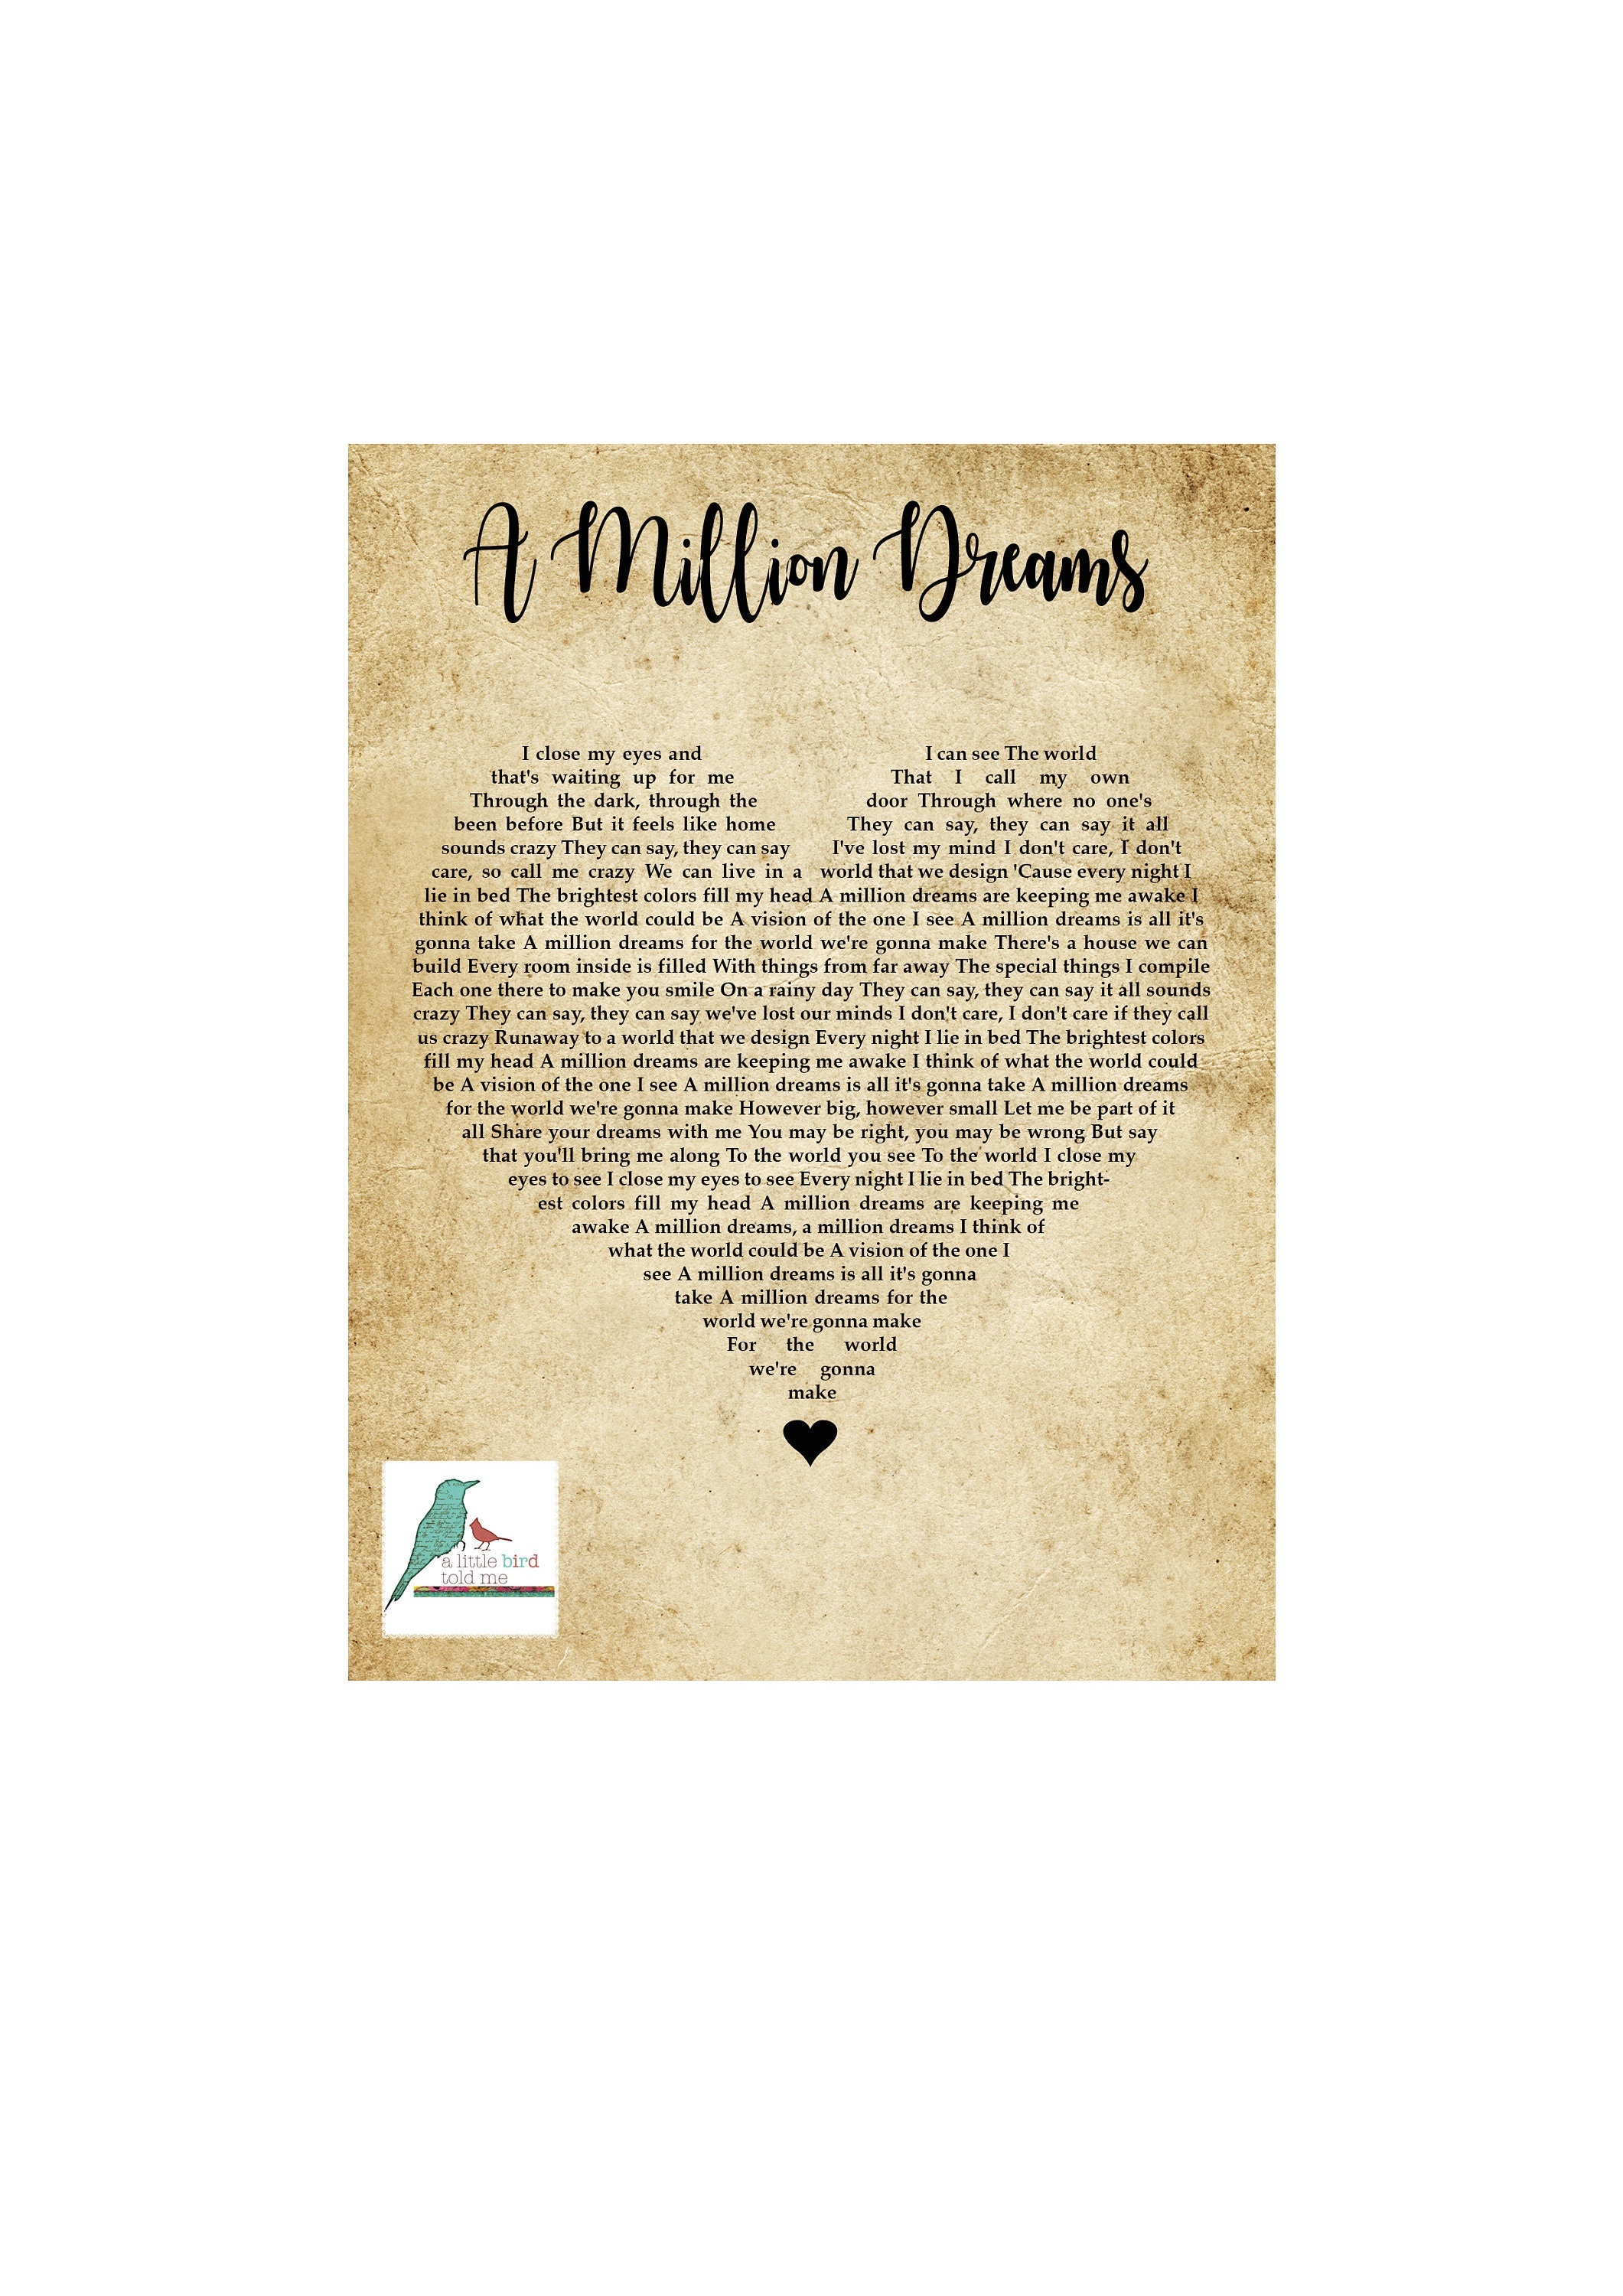 graphic regarding A Million Dreams Lyrics Printable called Complete Lyrics Of A Million Wants Lyrics Middle